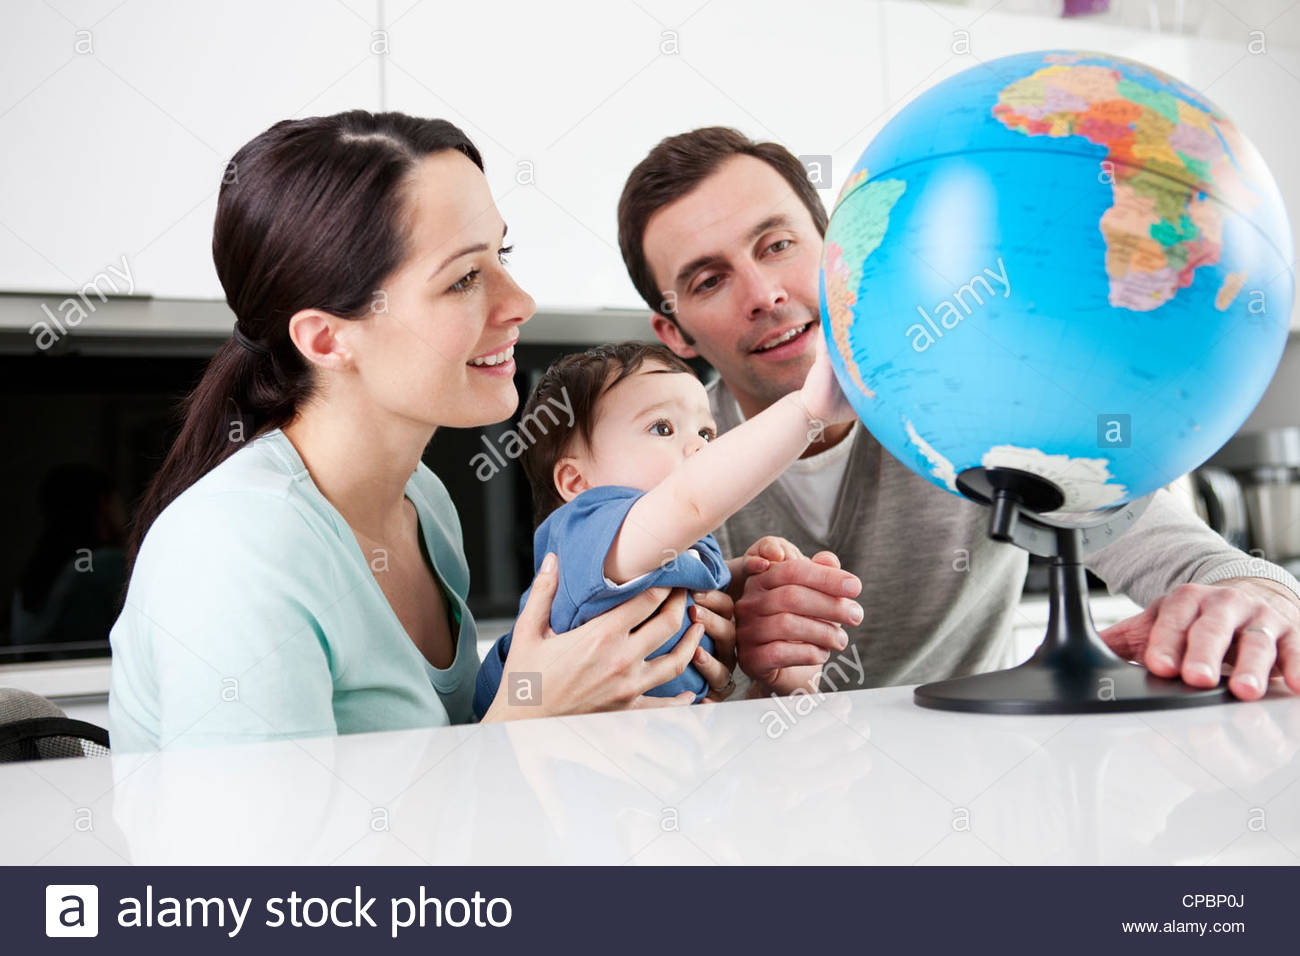 Un couple et leur fils bébé looking at a globe Photo Stock